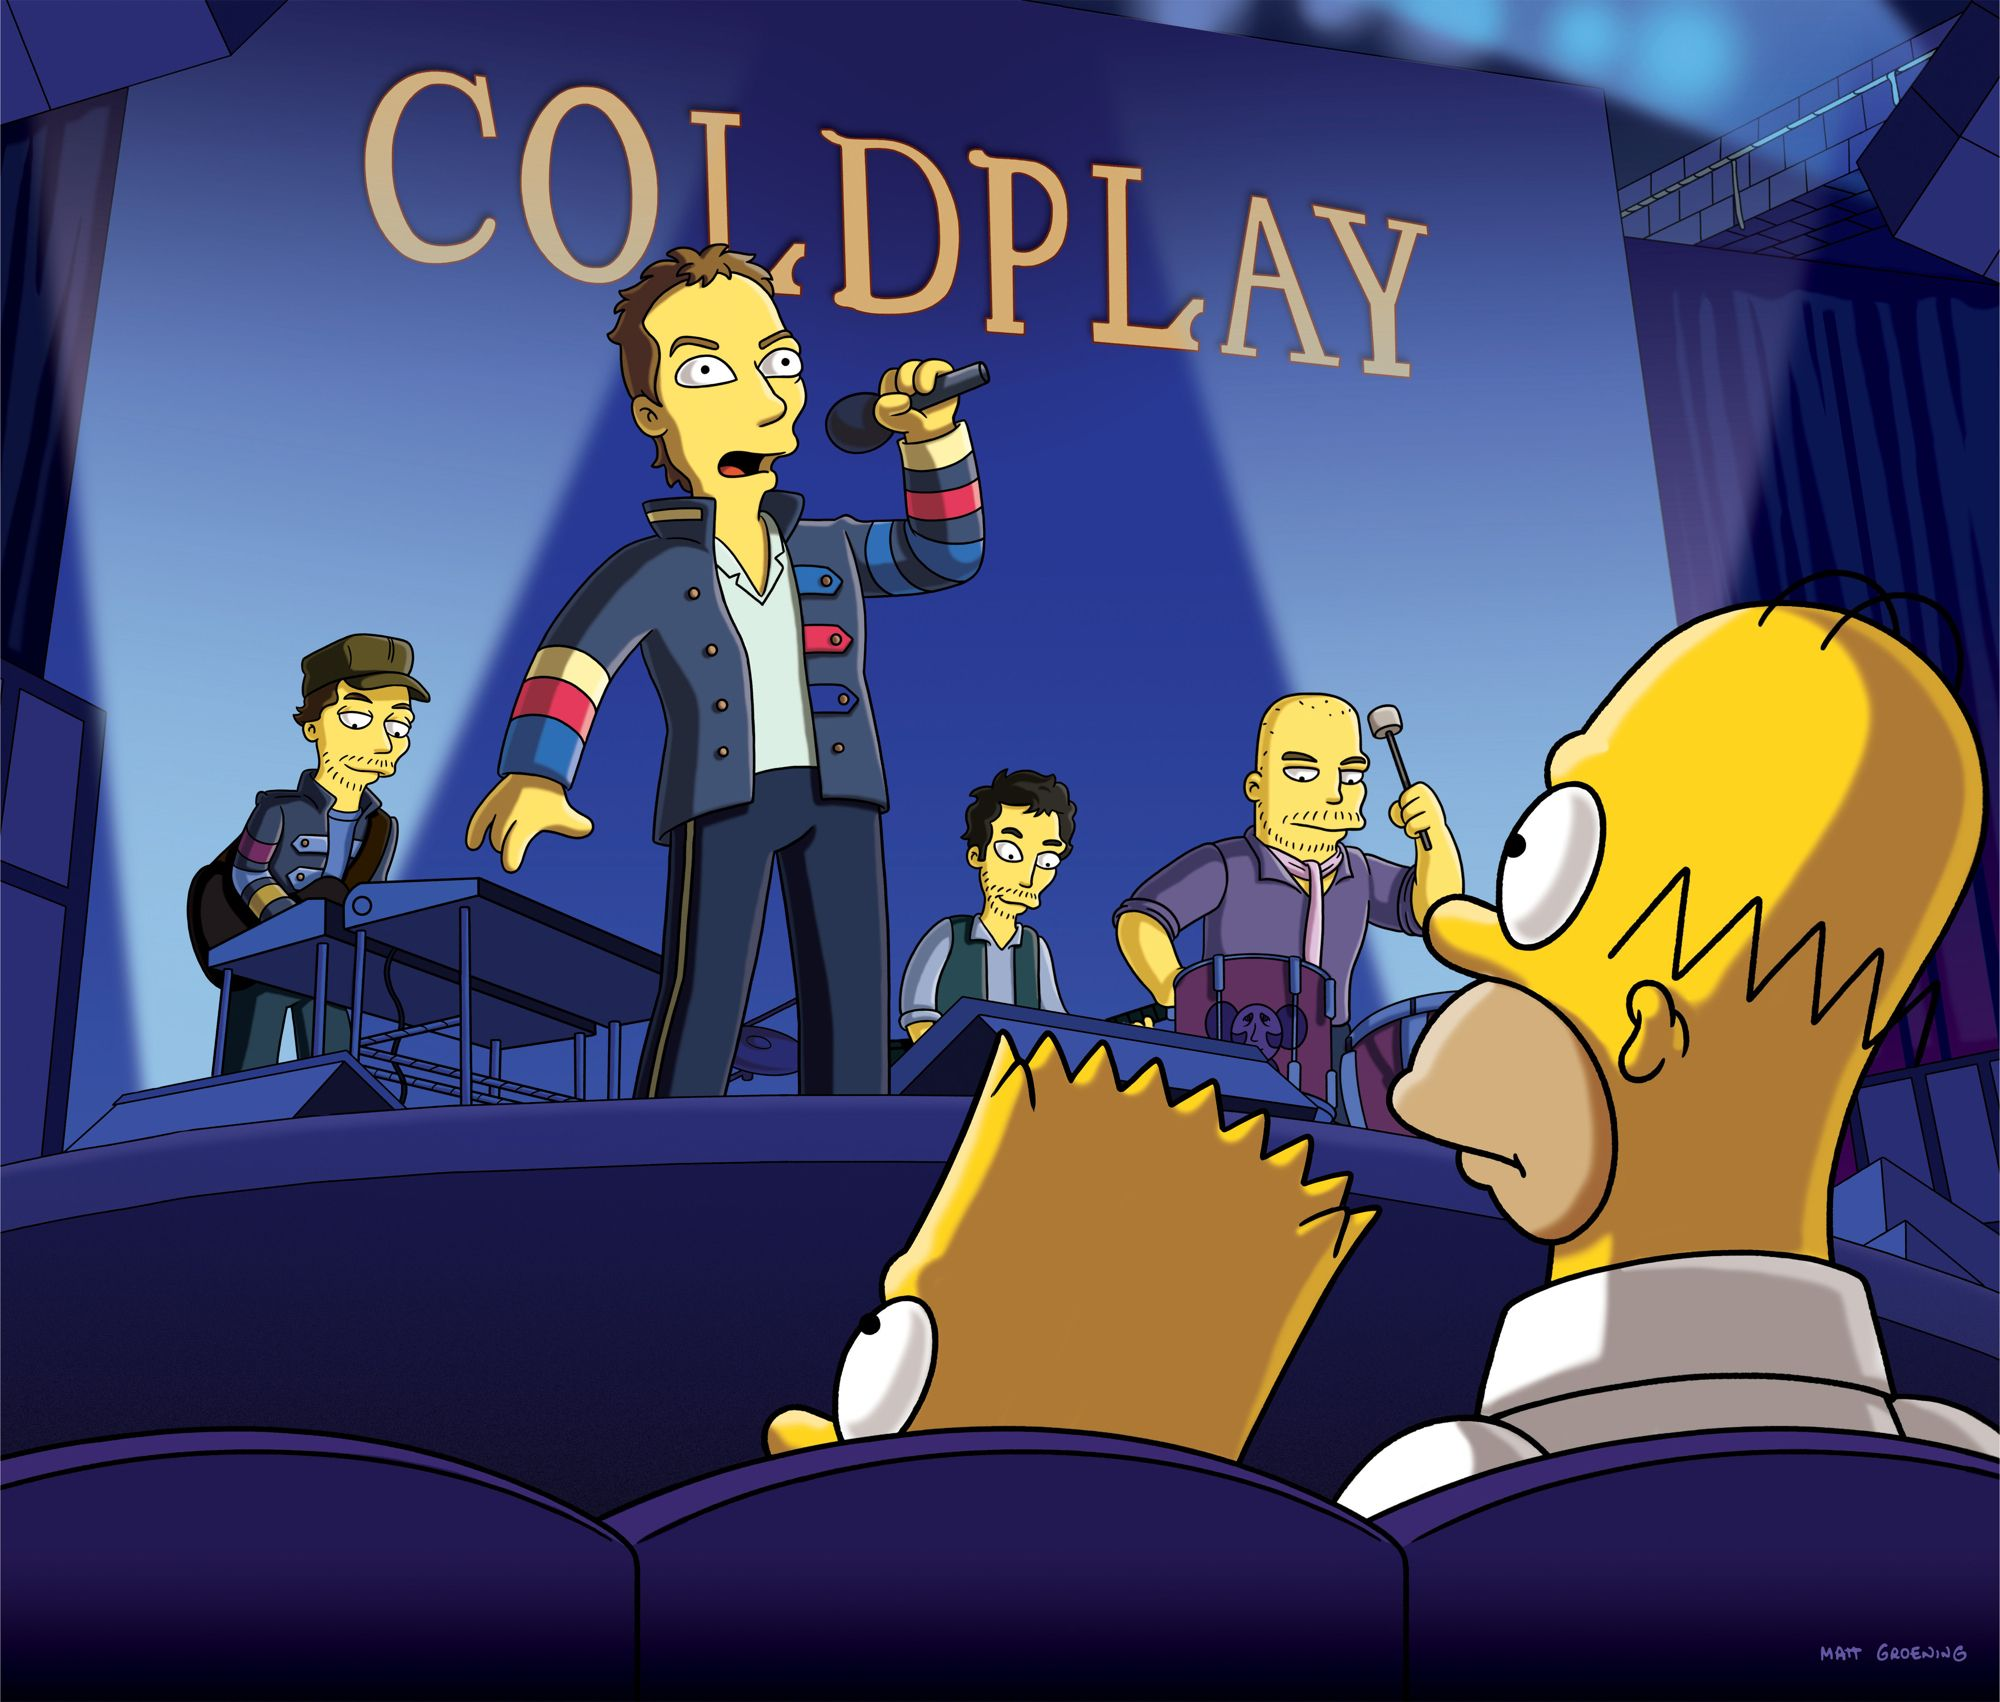 Coldplay wallpapers google search coldplay pinterest coldplay wallpapers google search voltagebd Gallery